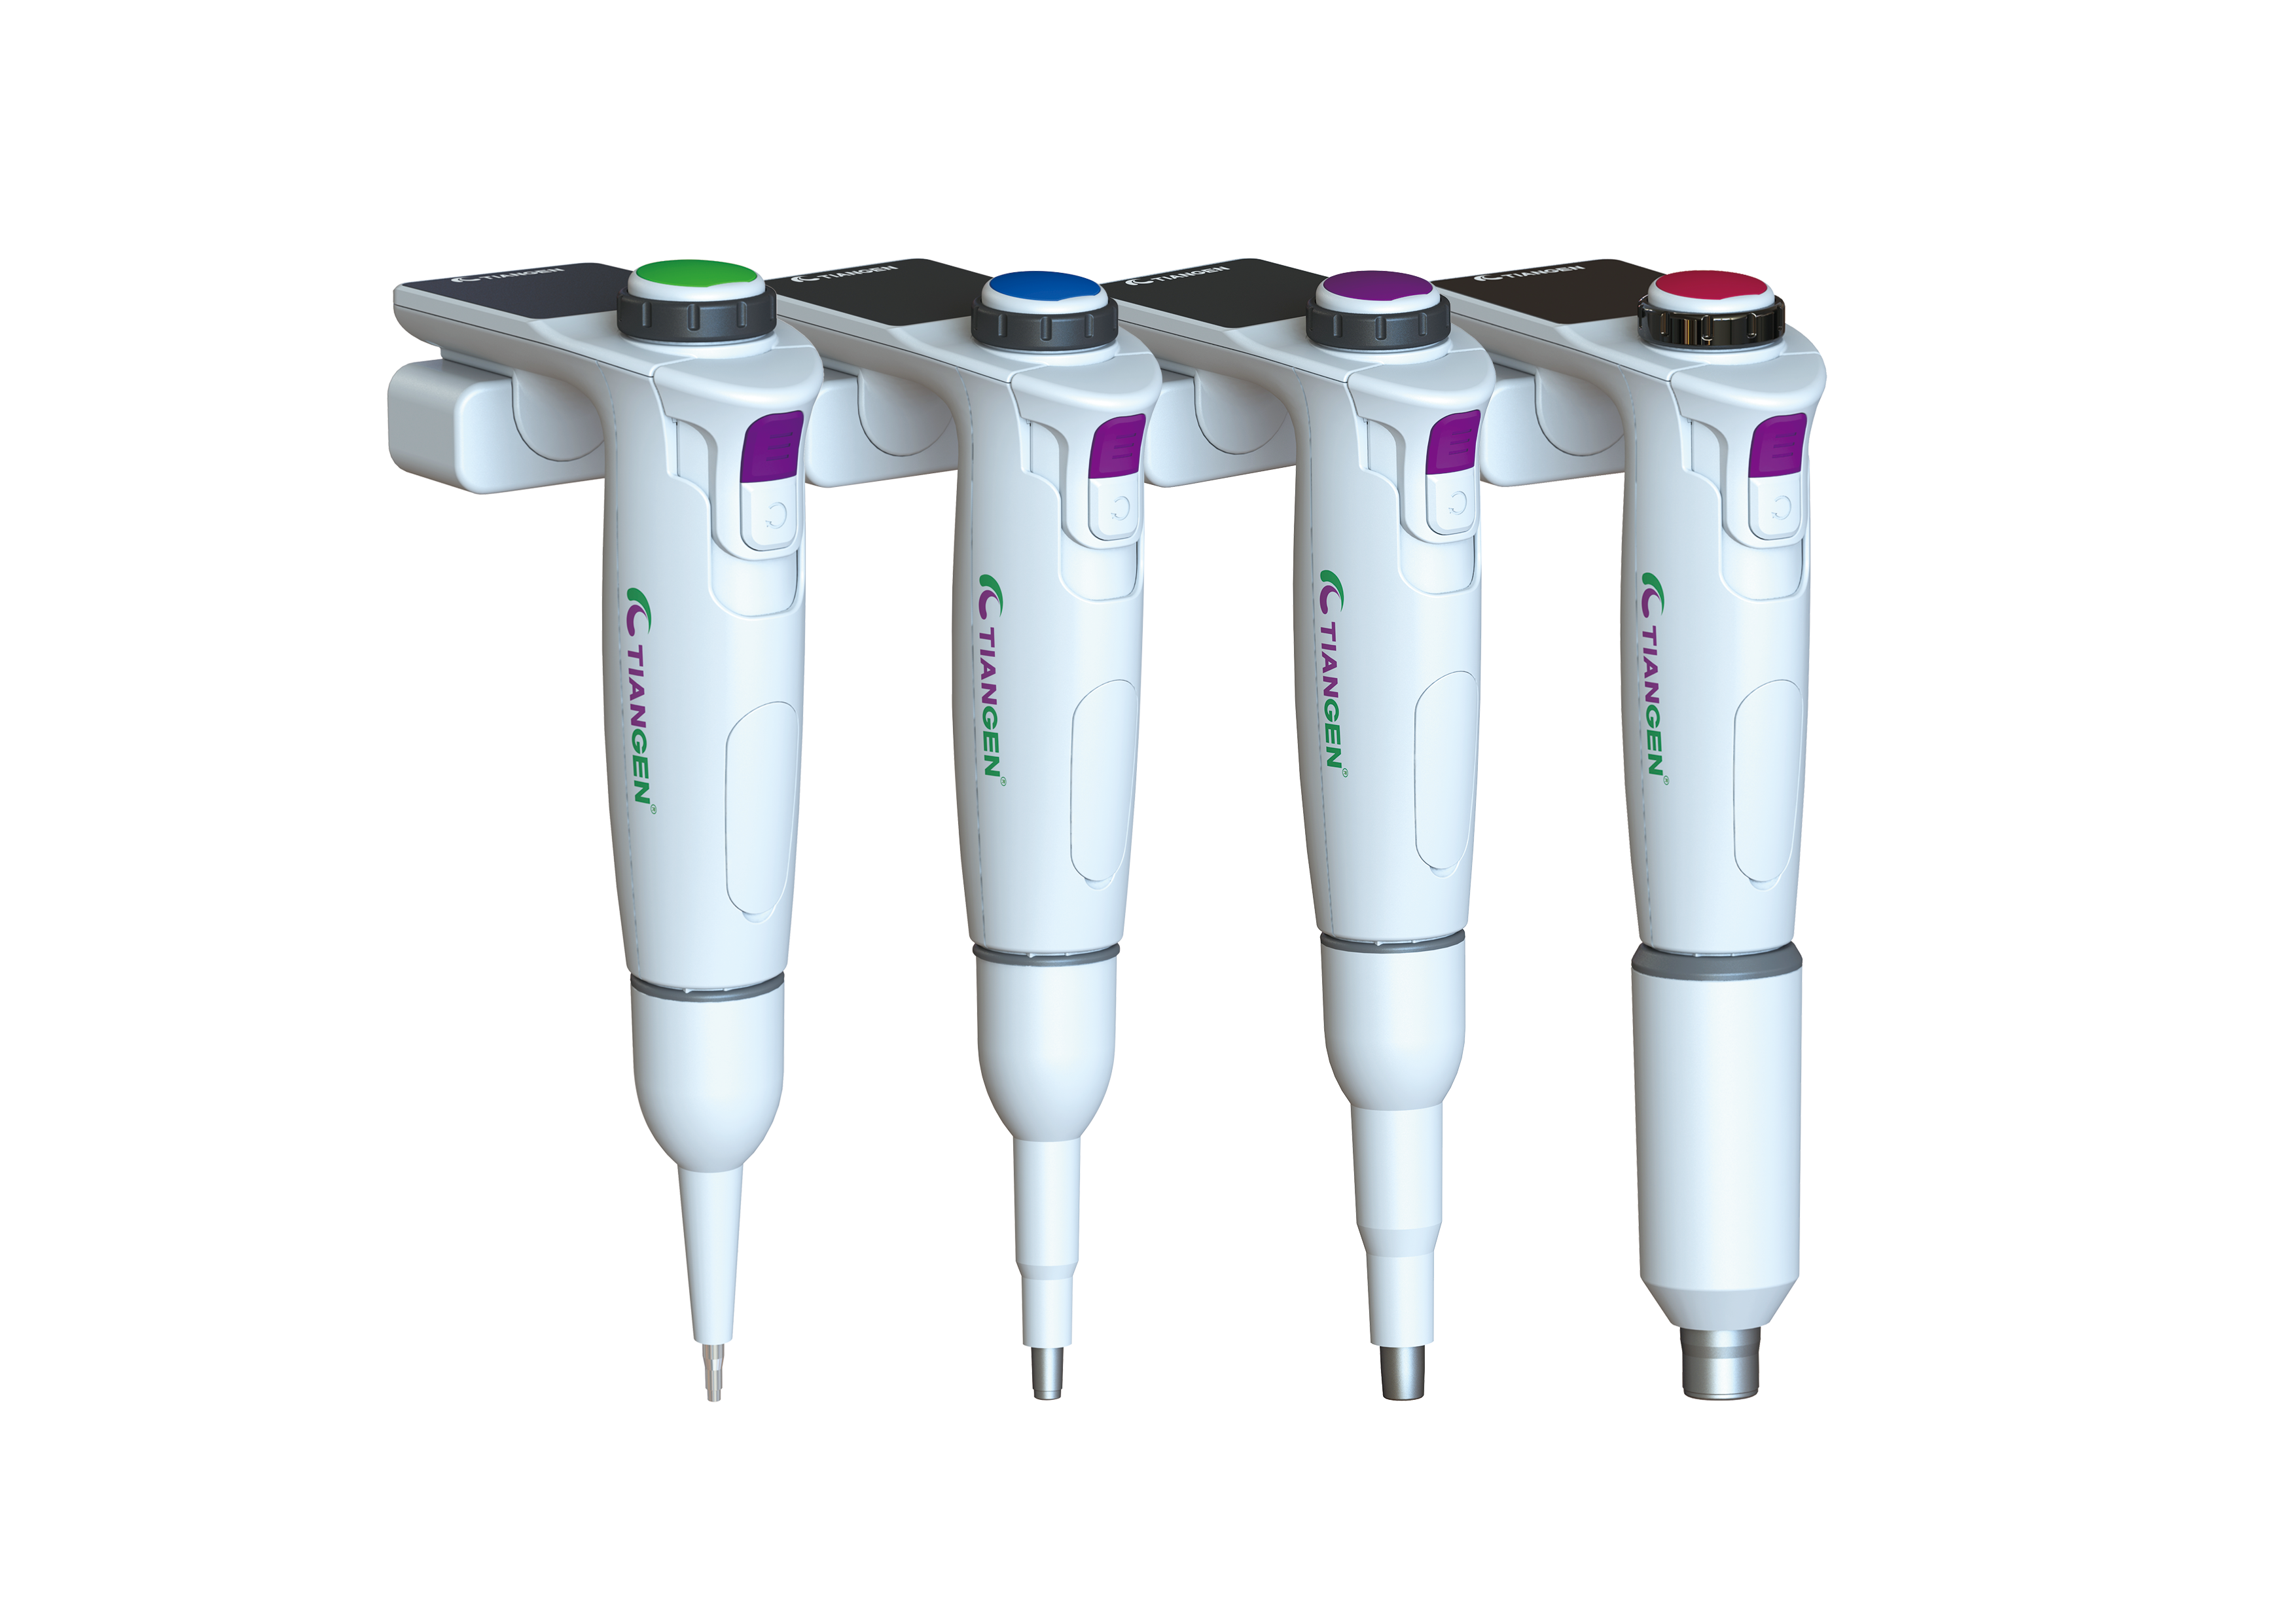 TGet 电动移液器(TGet Electronic Pipette)